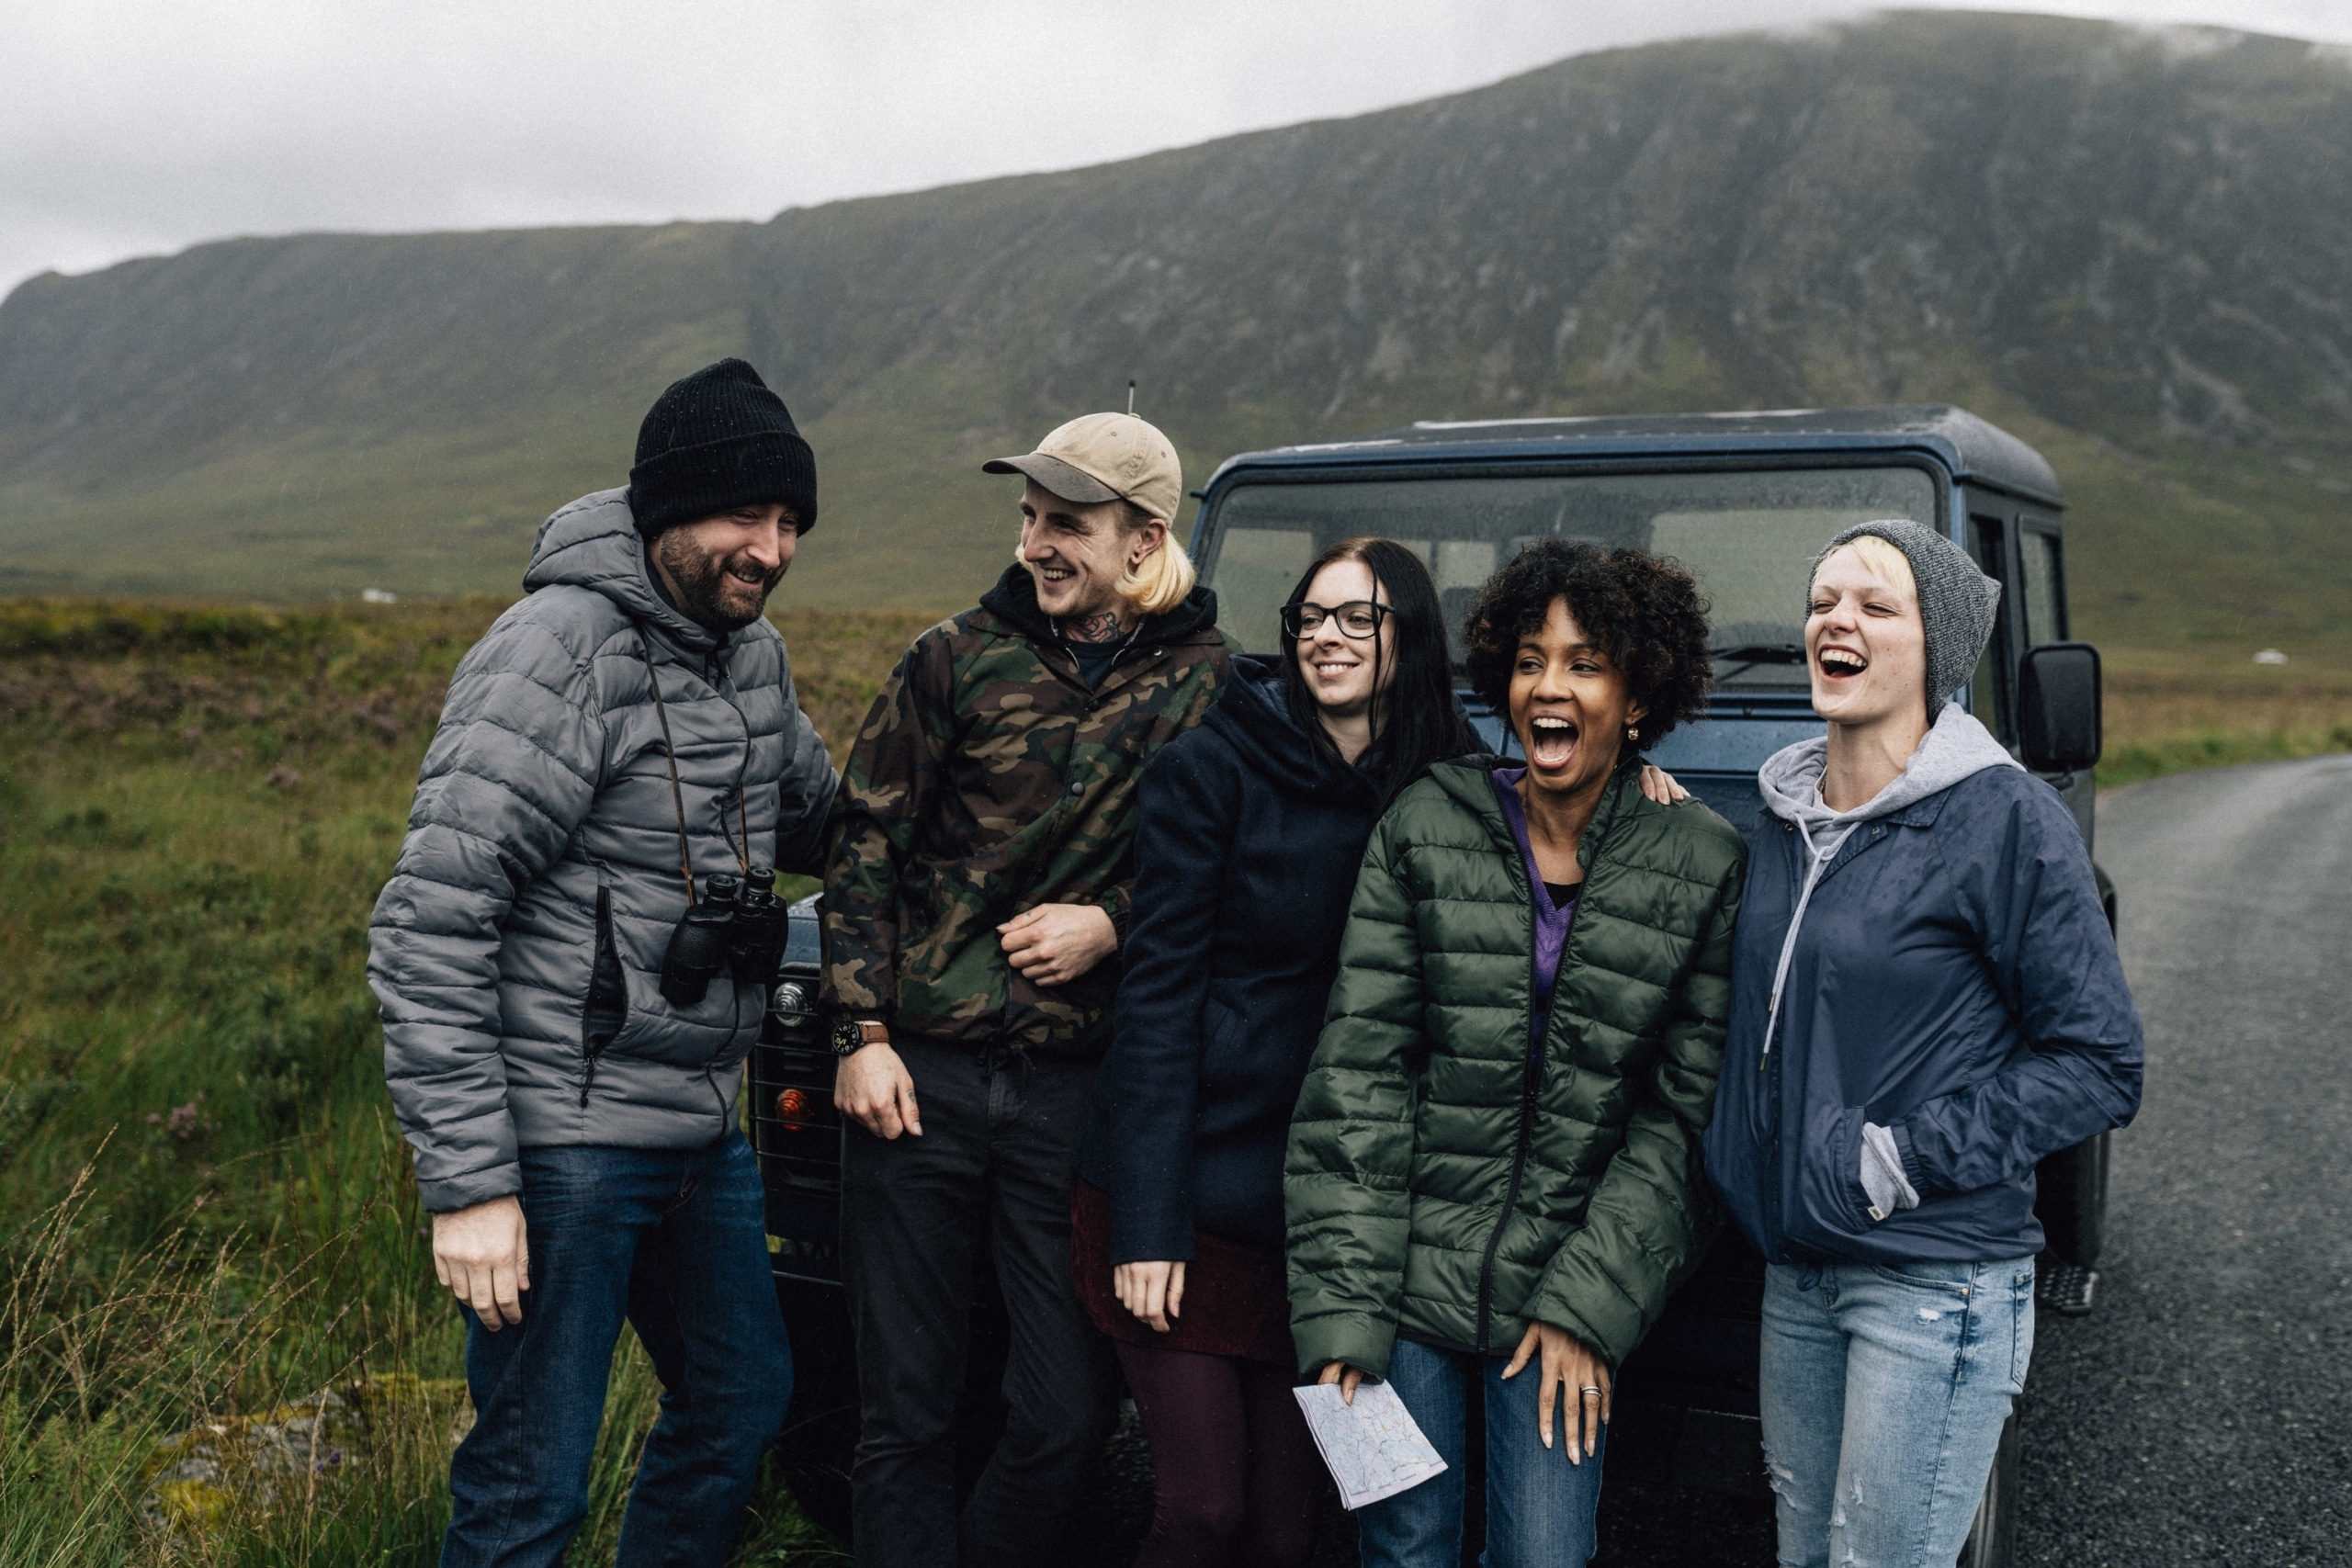 A group of friends taking a break from driving in Scotland, laughing and using Scottish slang